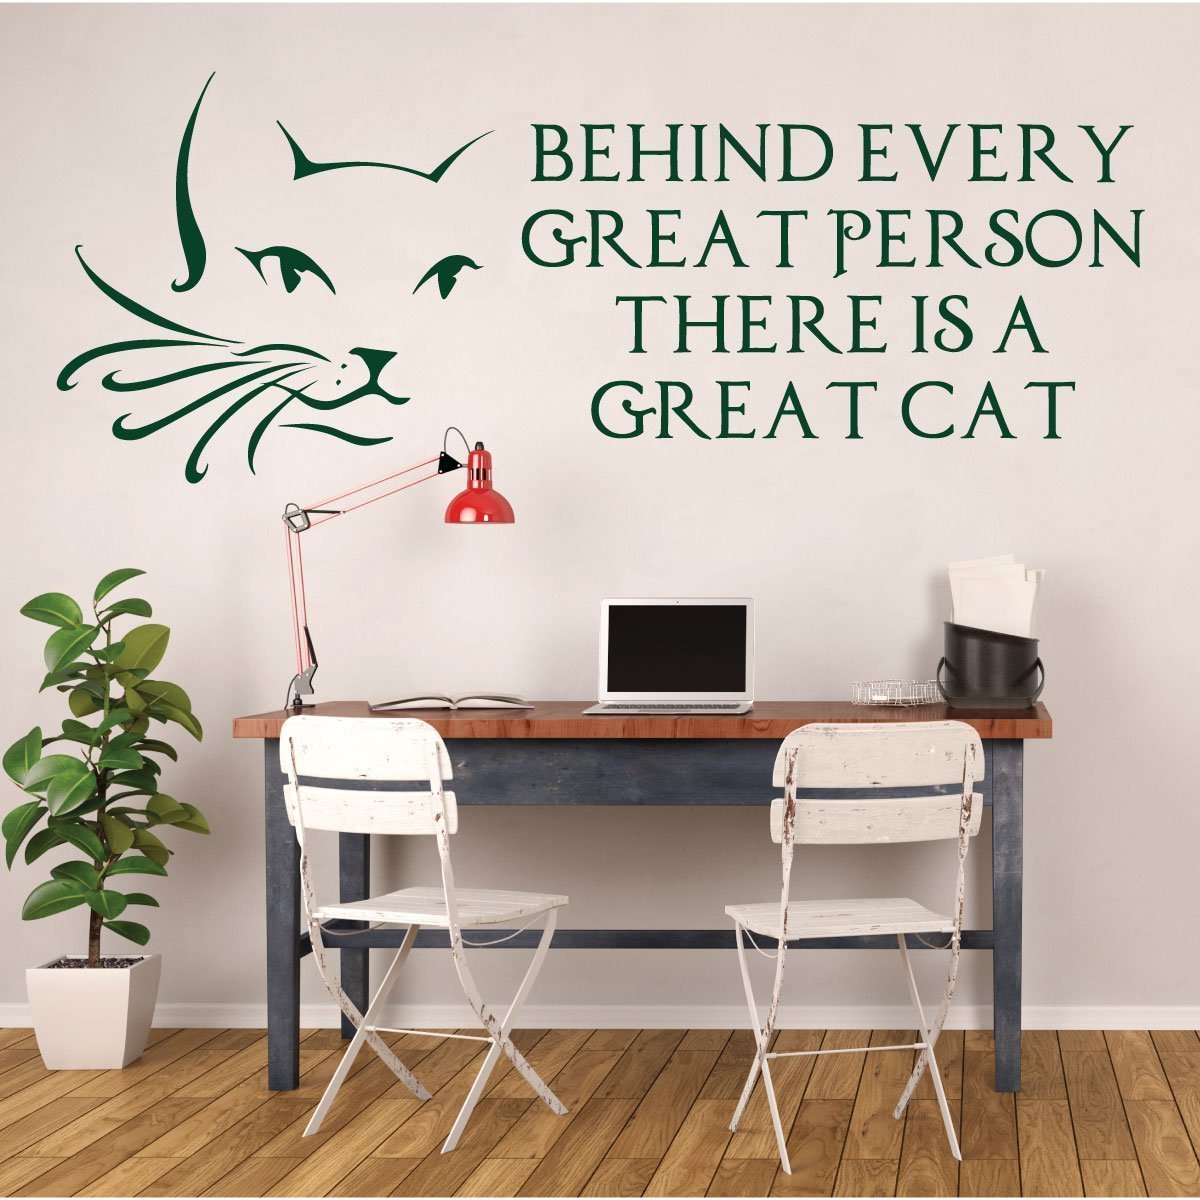 Cat Wall Decals - Cat Lover Gifts - Cat Face with Whiskers - Behind Every Great Person There Is A Cat